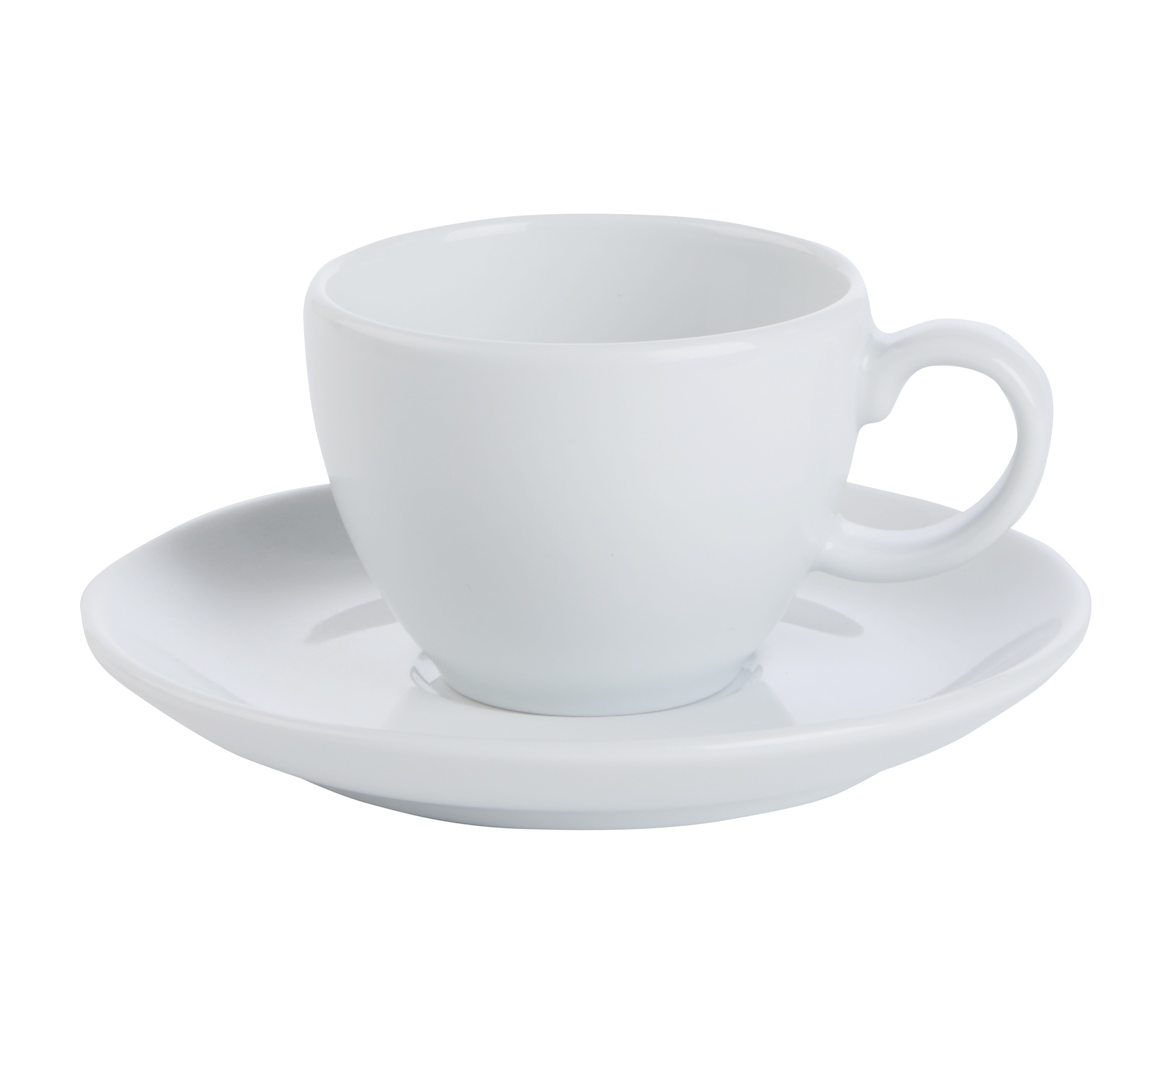 Bowl Shaped Cup & Saucer